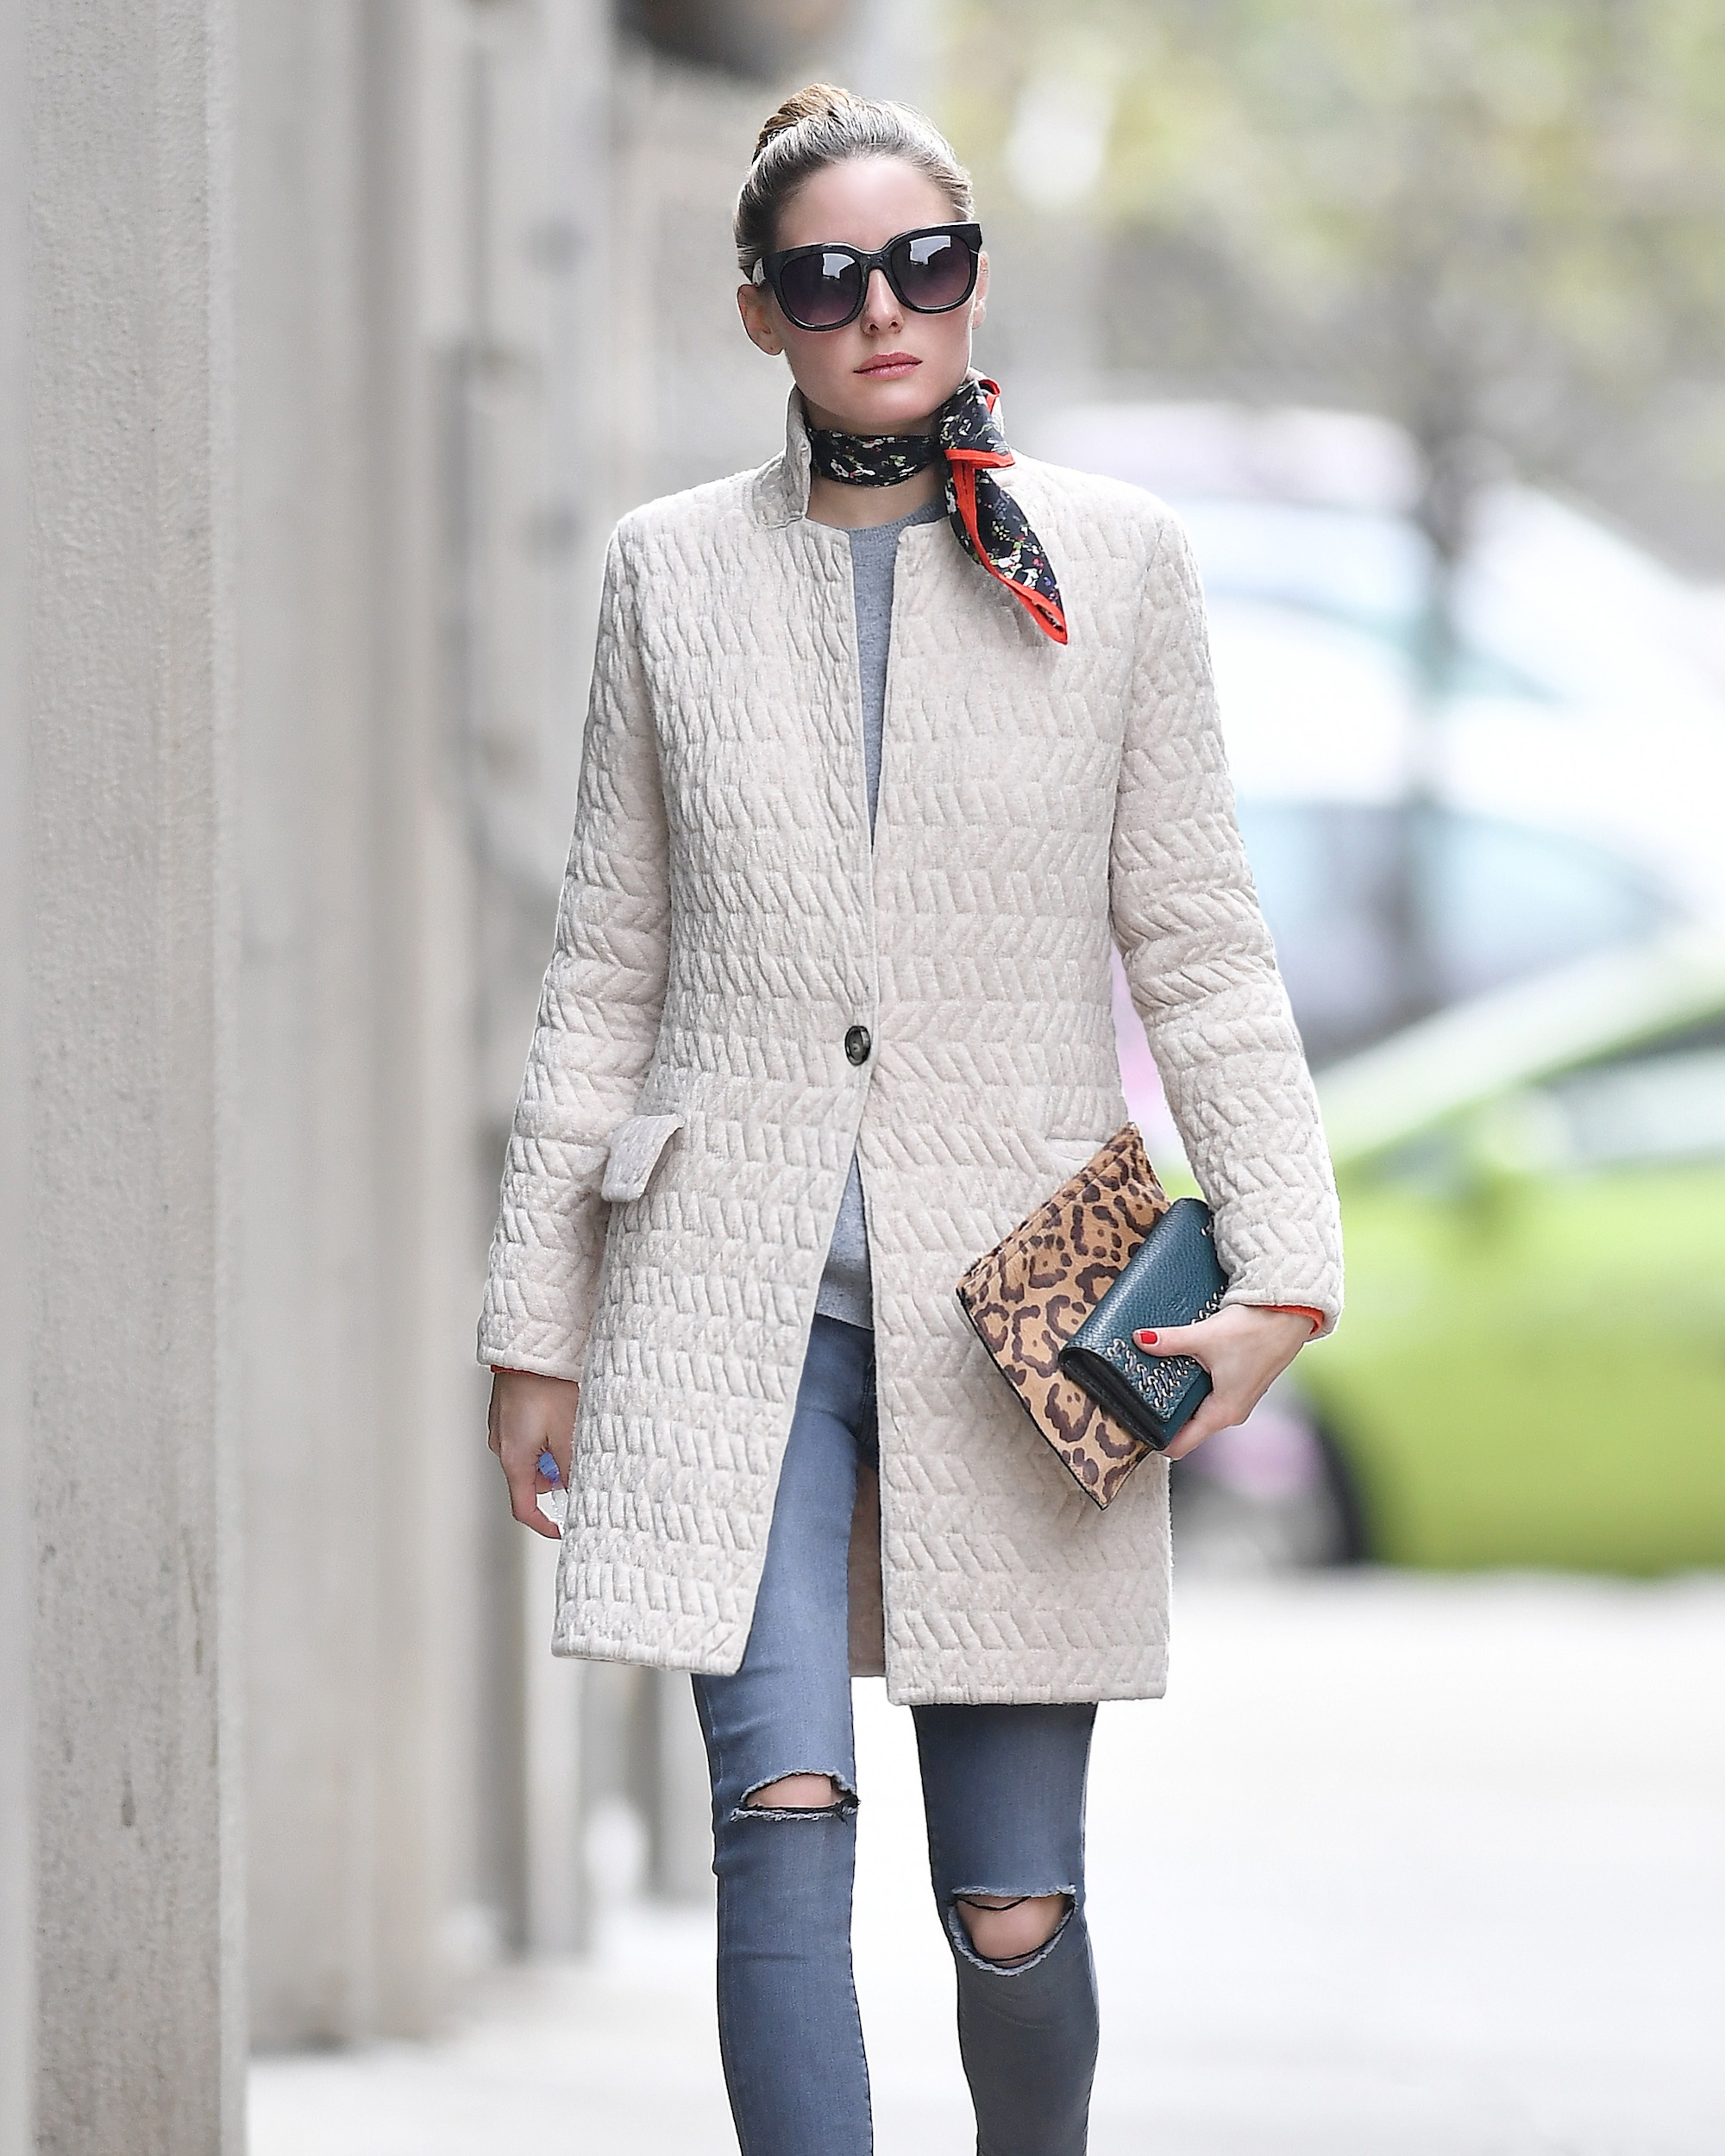 EXCLUSIVE: Fashion blogger Olivia Palermo wears a scarf while out and about in Brooklyn, New York. Pictured: Olivia Palermo Ref: SPL1479936 150417 EXCLUSIVE Picture by: Frank Sullivan/Splash News Splash News and Pictures Los Angeles:310-821-2666 New York:212-619-2666 London:870-934-2666 photodesk@splashnews.com